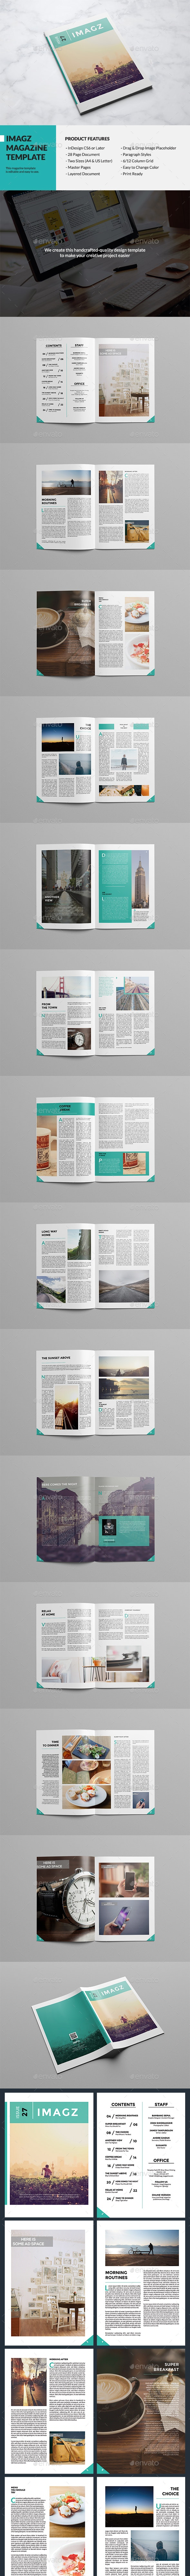 27 Best Magazine Templates  for February 2019